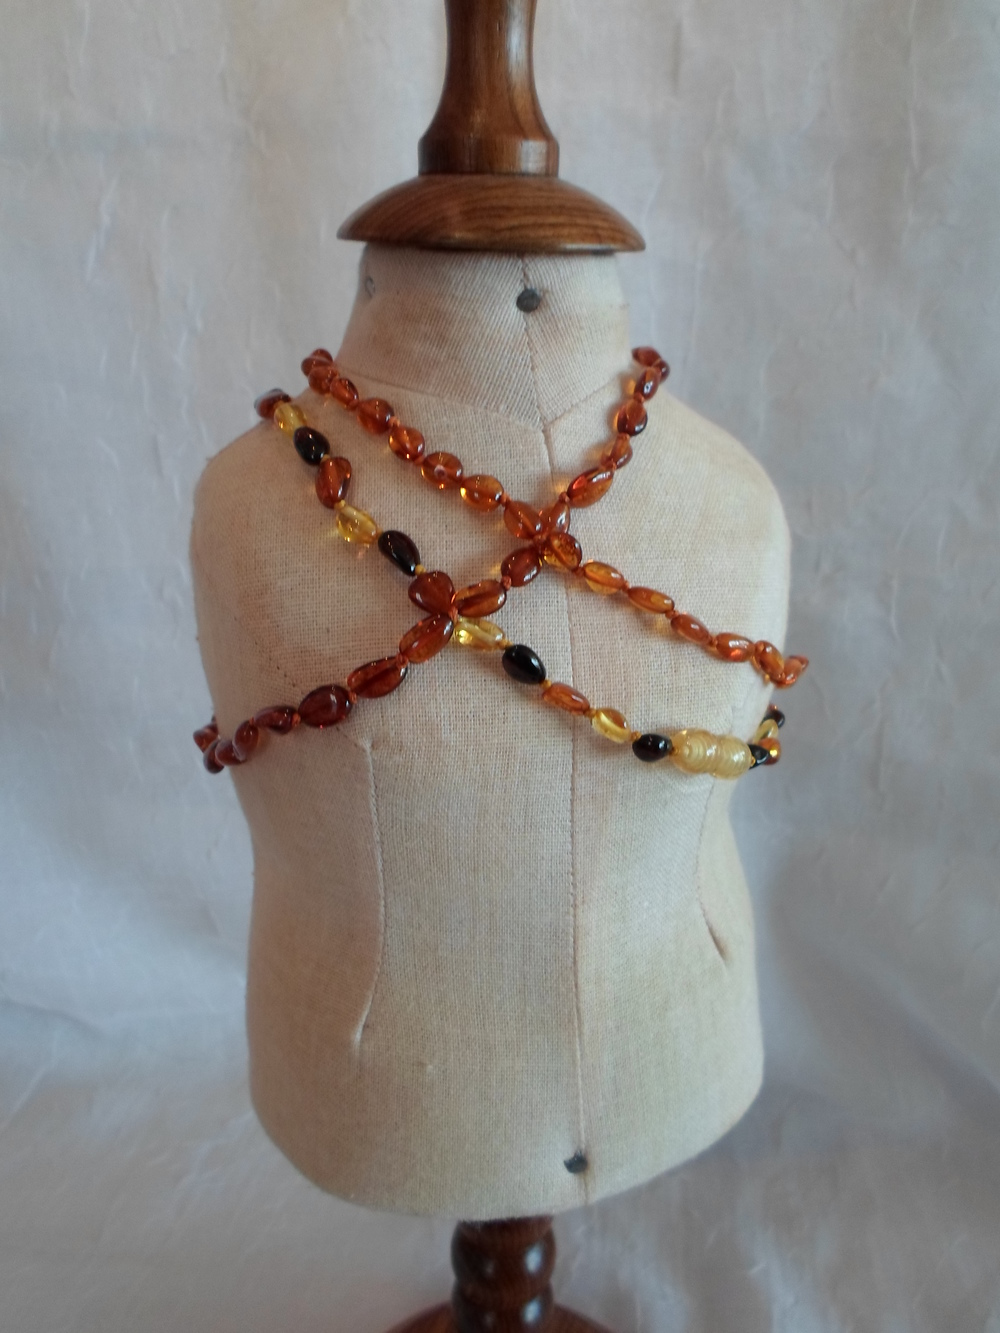 Amber Teething Necklace for Baby $23.00 Wants 1